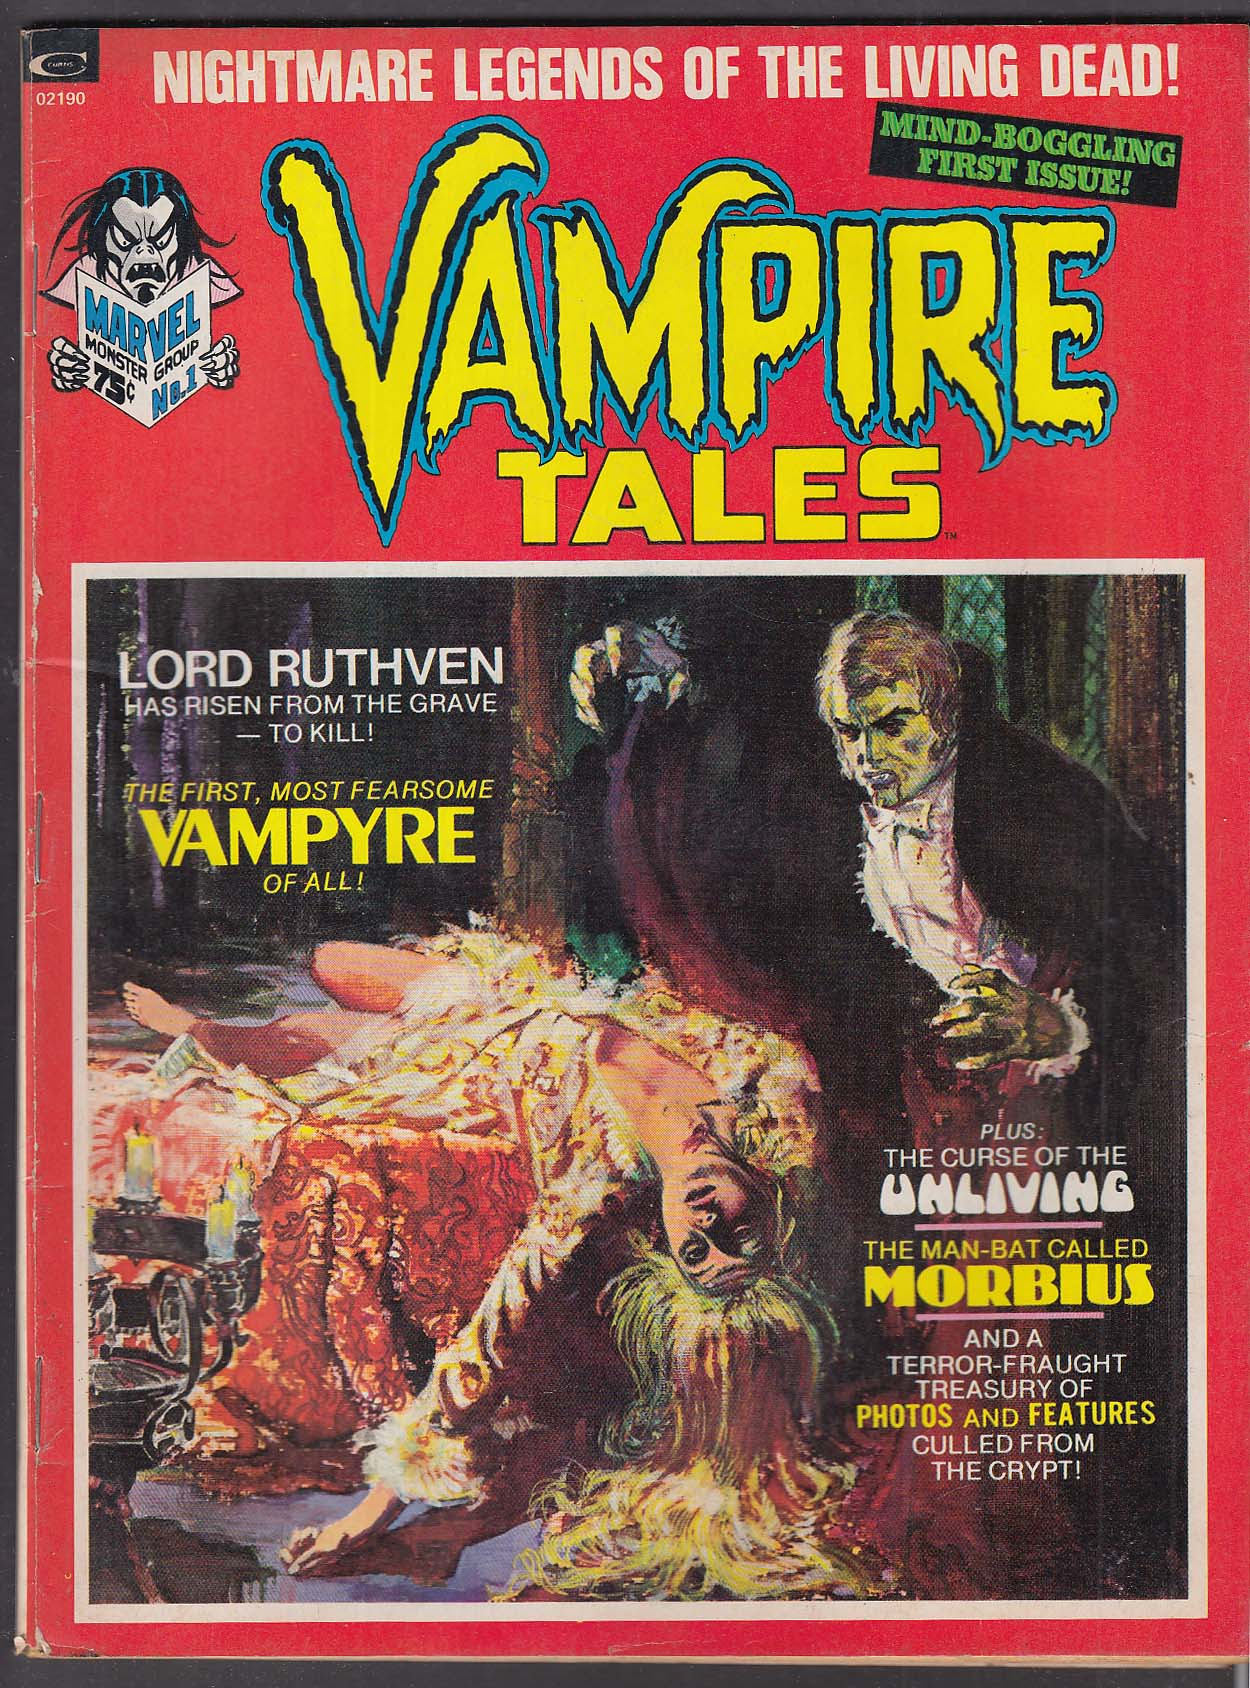 VAMPIRE TALES Vol 1 #1 Marvel comic book 1973 Esteban Maroto Chris Claremont +